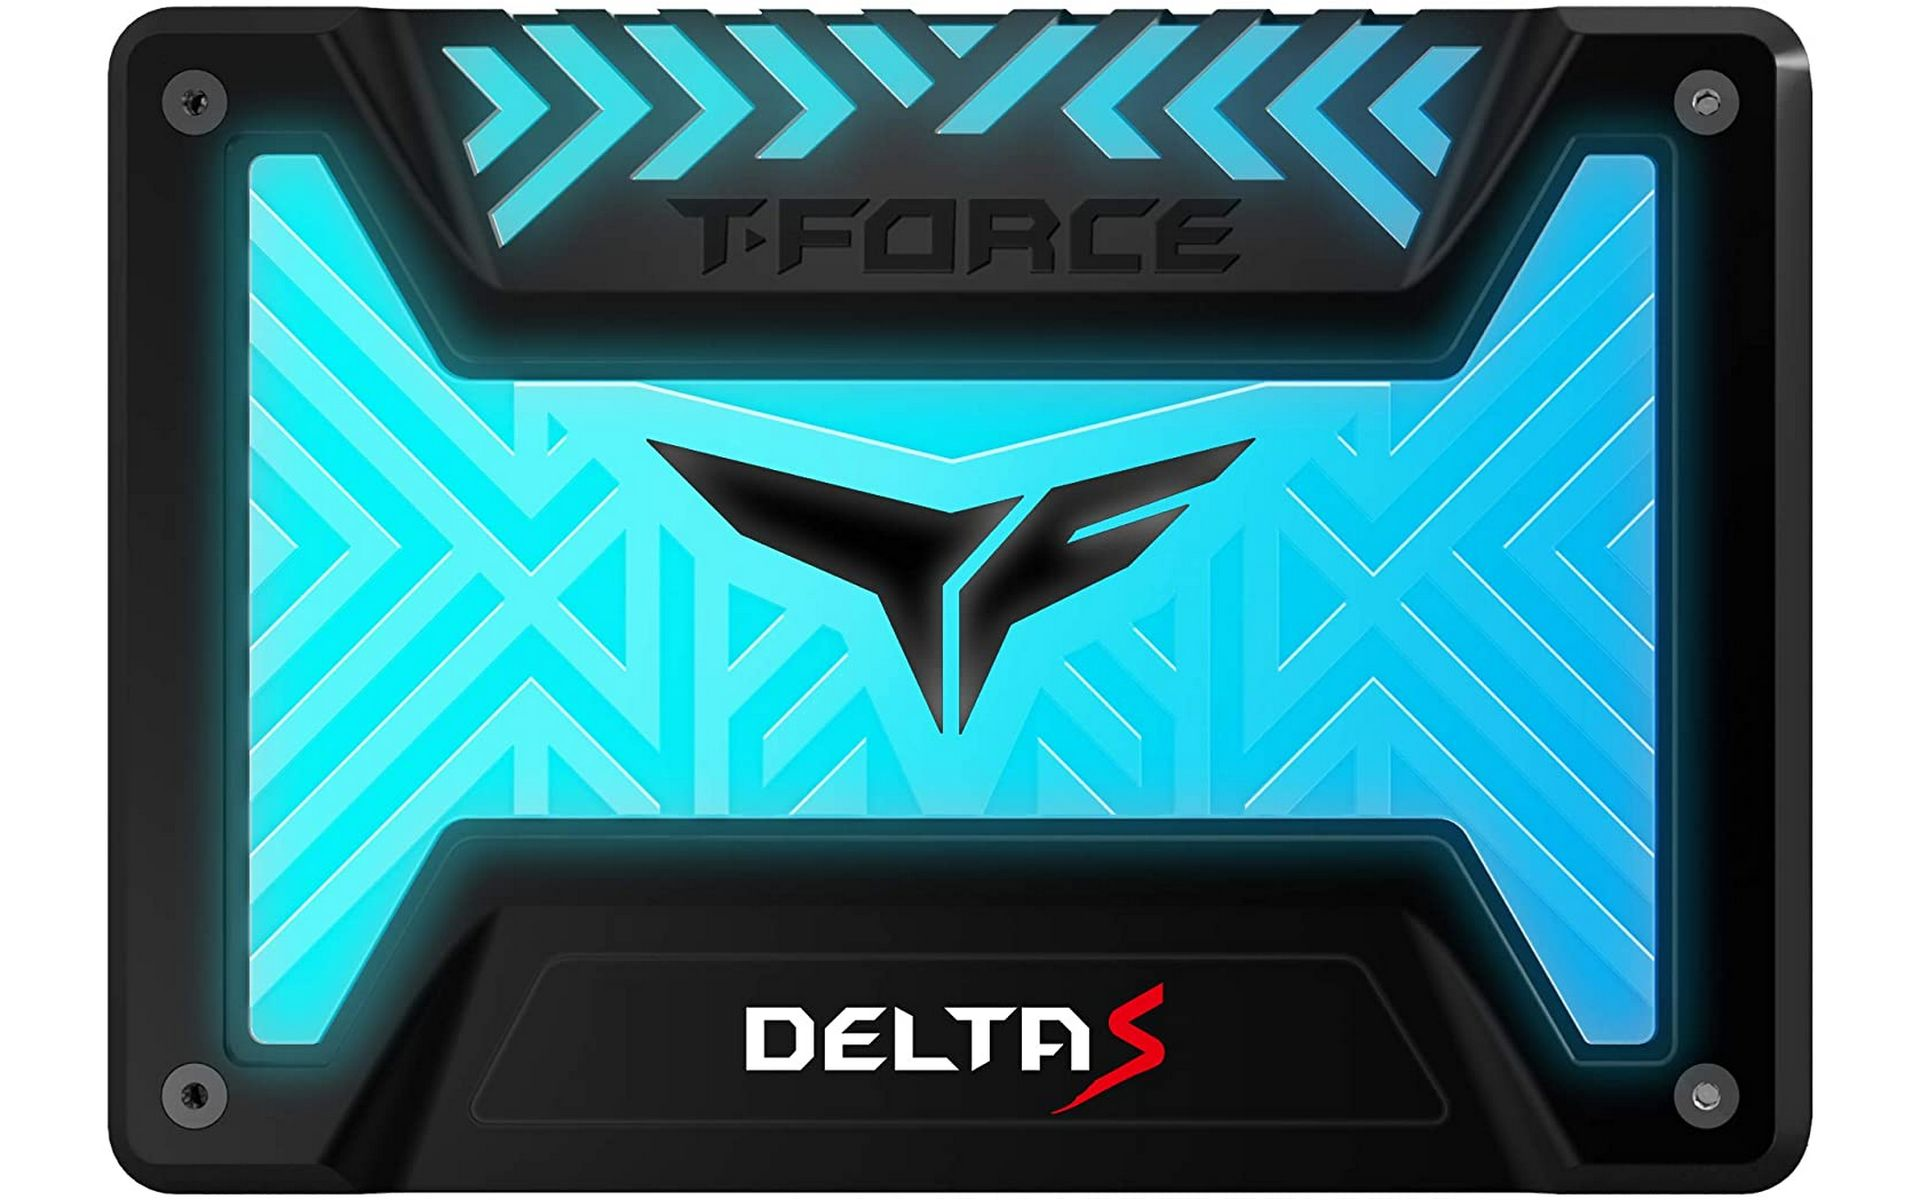 SSD TEAMGROUP T-Force Delta S RGB 250GB Black 5V